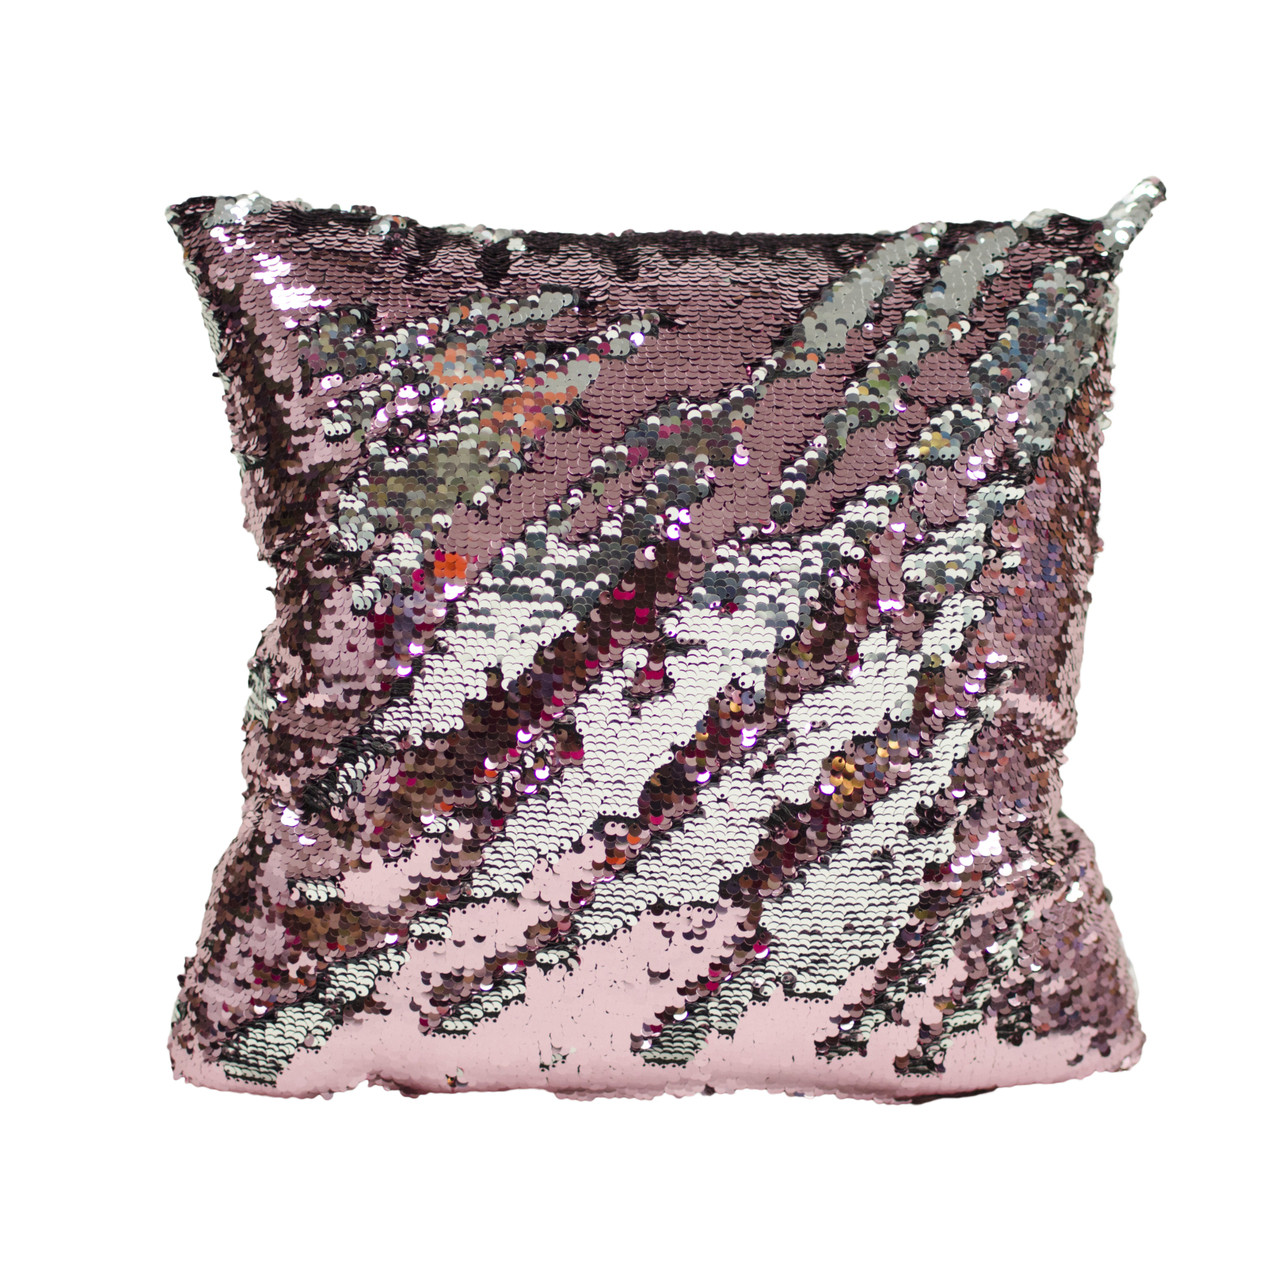 Decorative Sequin Throw Pillow 17x17 Inch, Comfortable Fill For ...